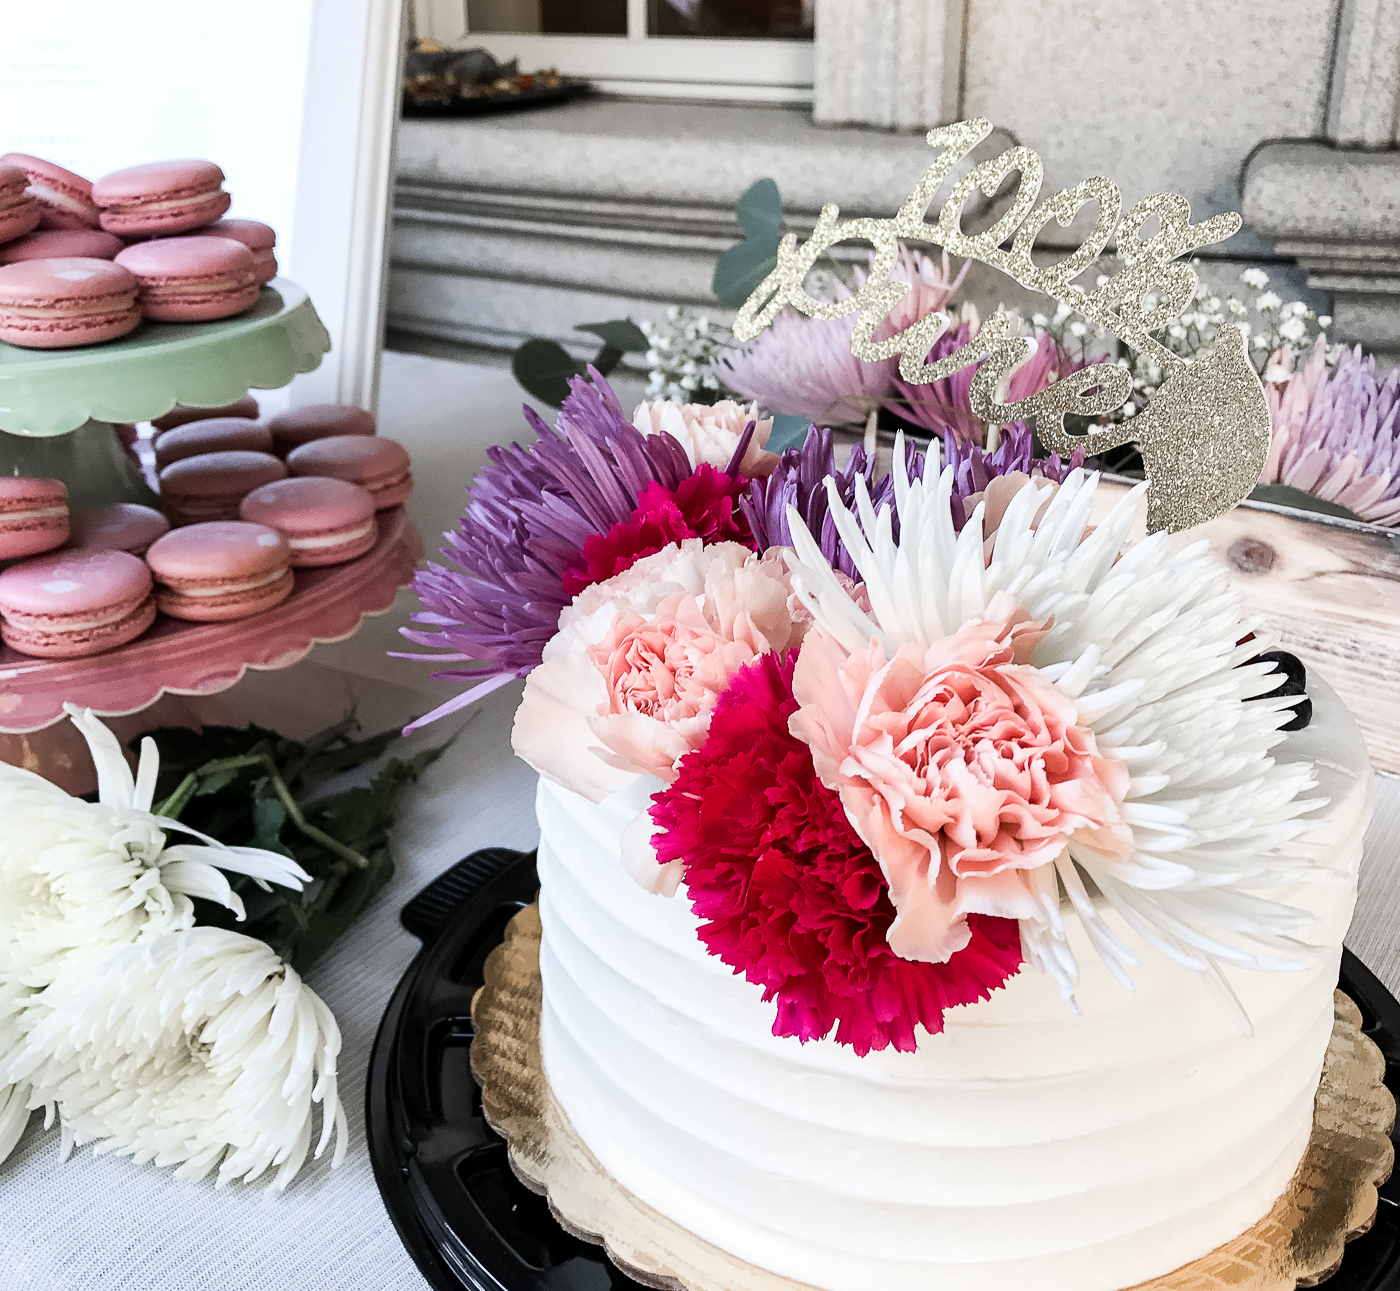 100% Pure Garden Beauty Brunch Desserts   The Chic Diary